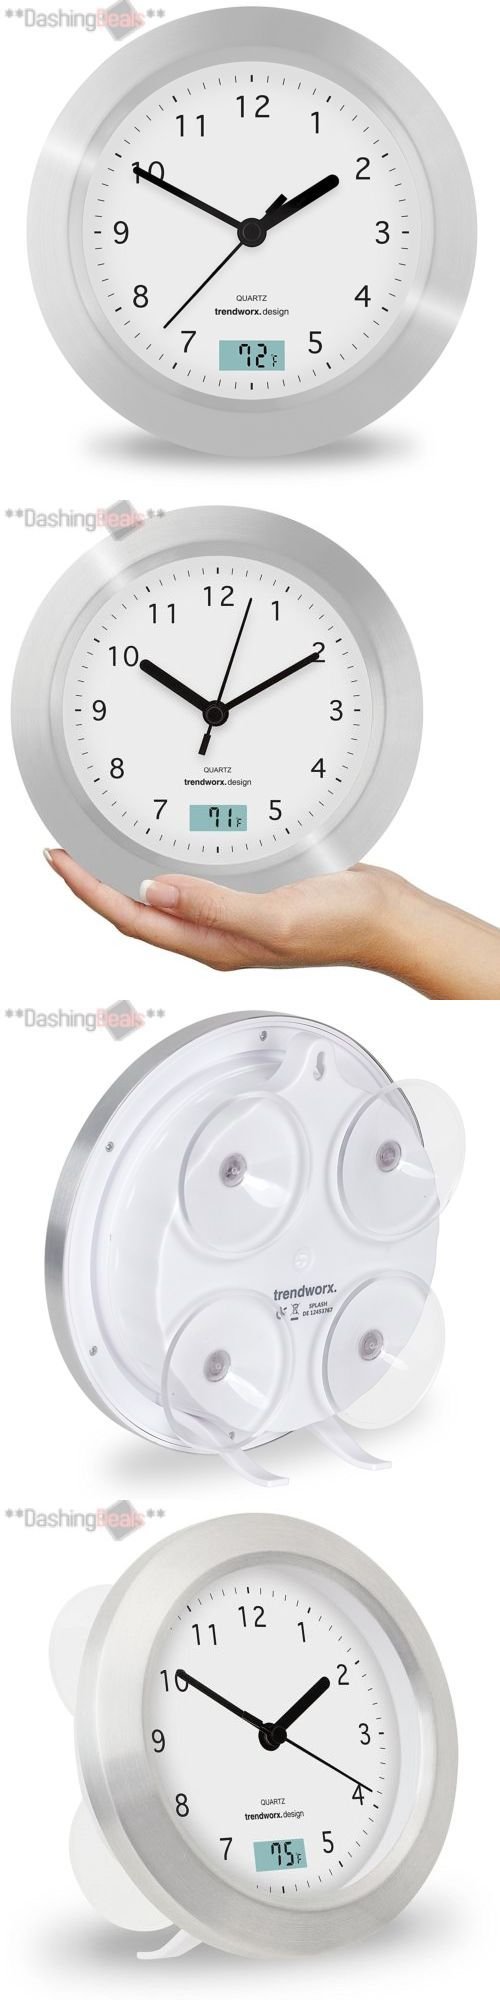 Toothbrush Holders 25453: Bathroom Clock Thermometer Suction Cup Wall Mount White Home Decoration New -> BUY IT NOW ONLY: $30.48 on eBay!